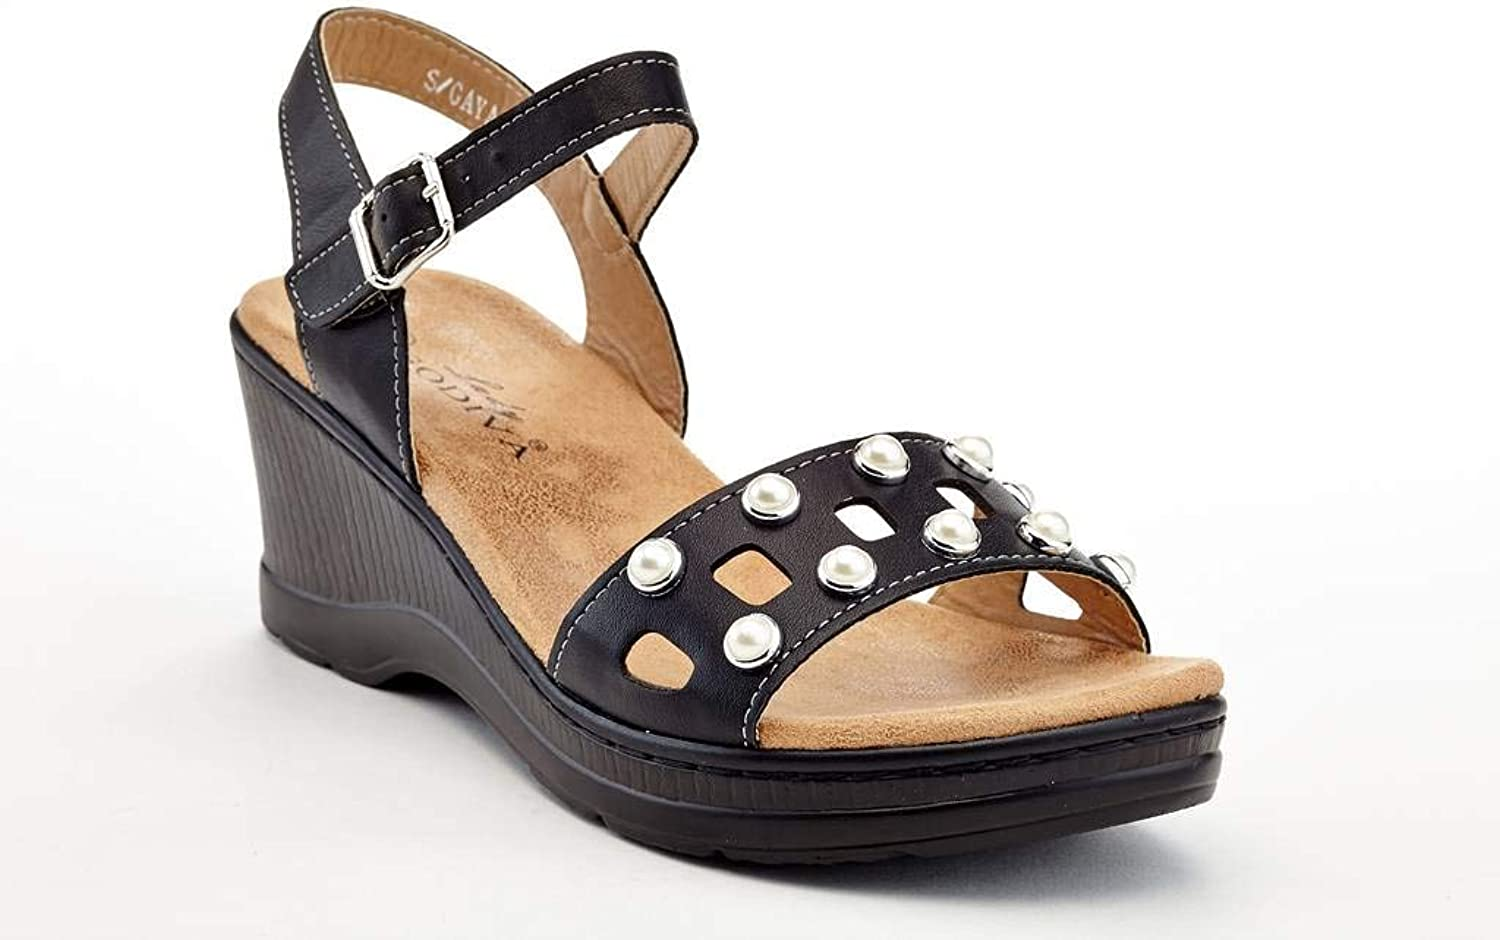 Lady Godiva Women's Comfort Wedge Sandals